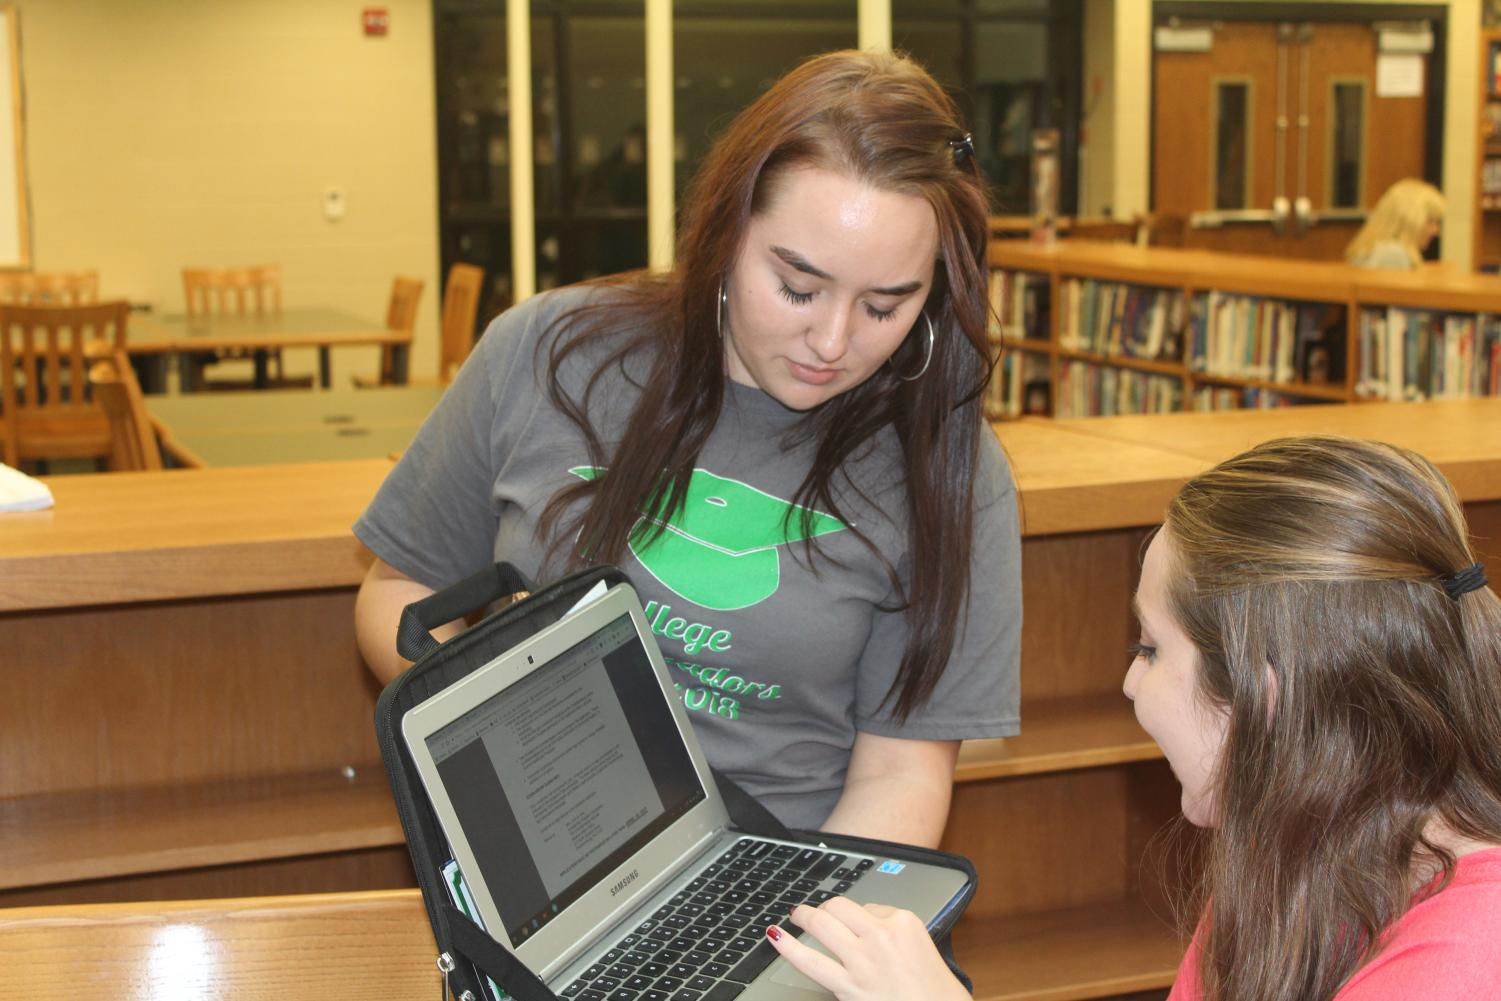 While lending a helping hand, Amber Brindle (12) chats with Maddie Hissong (12) to make the process more enjoyable.